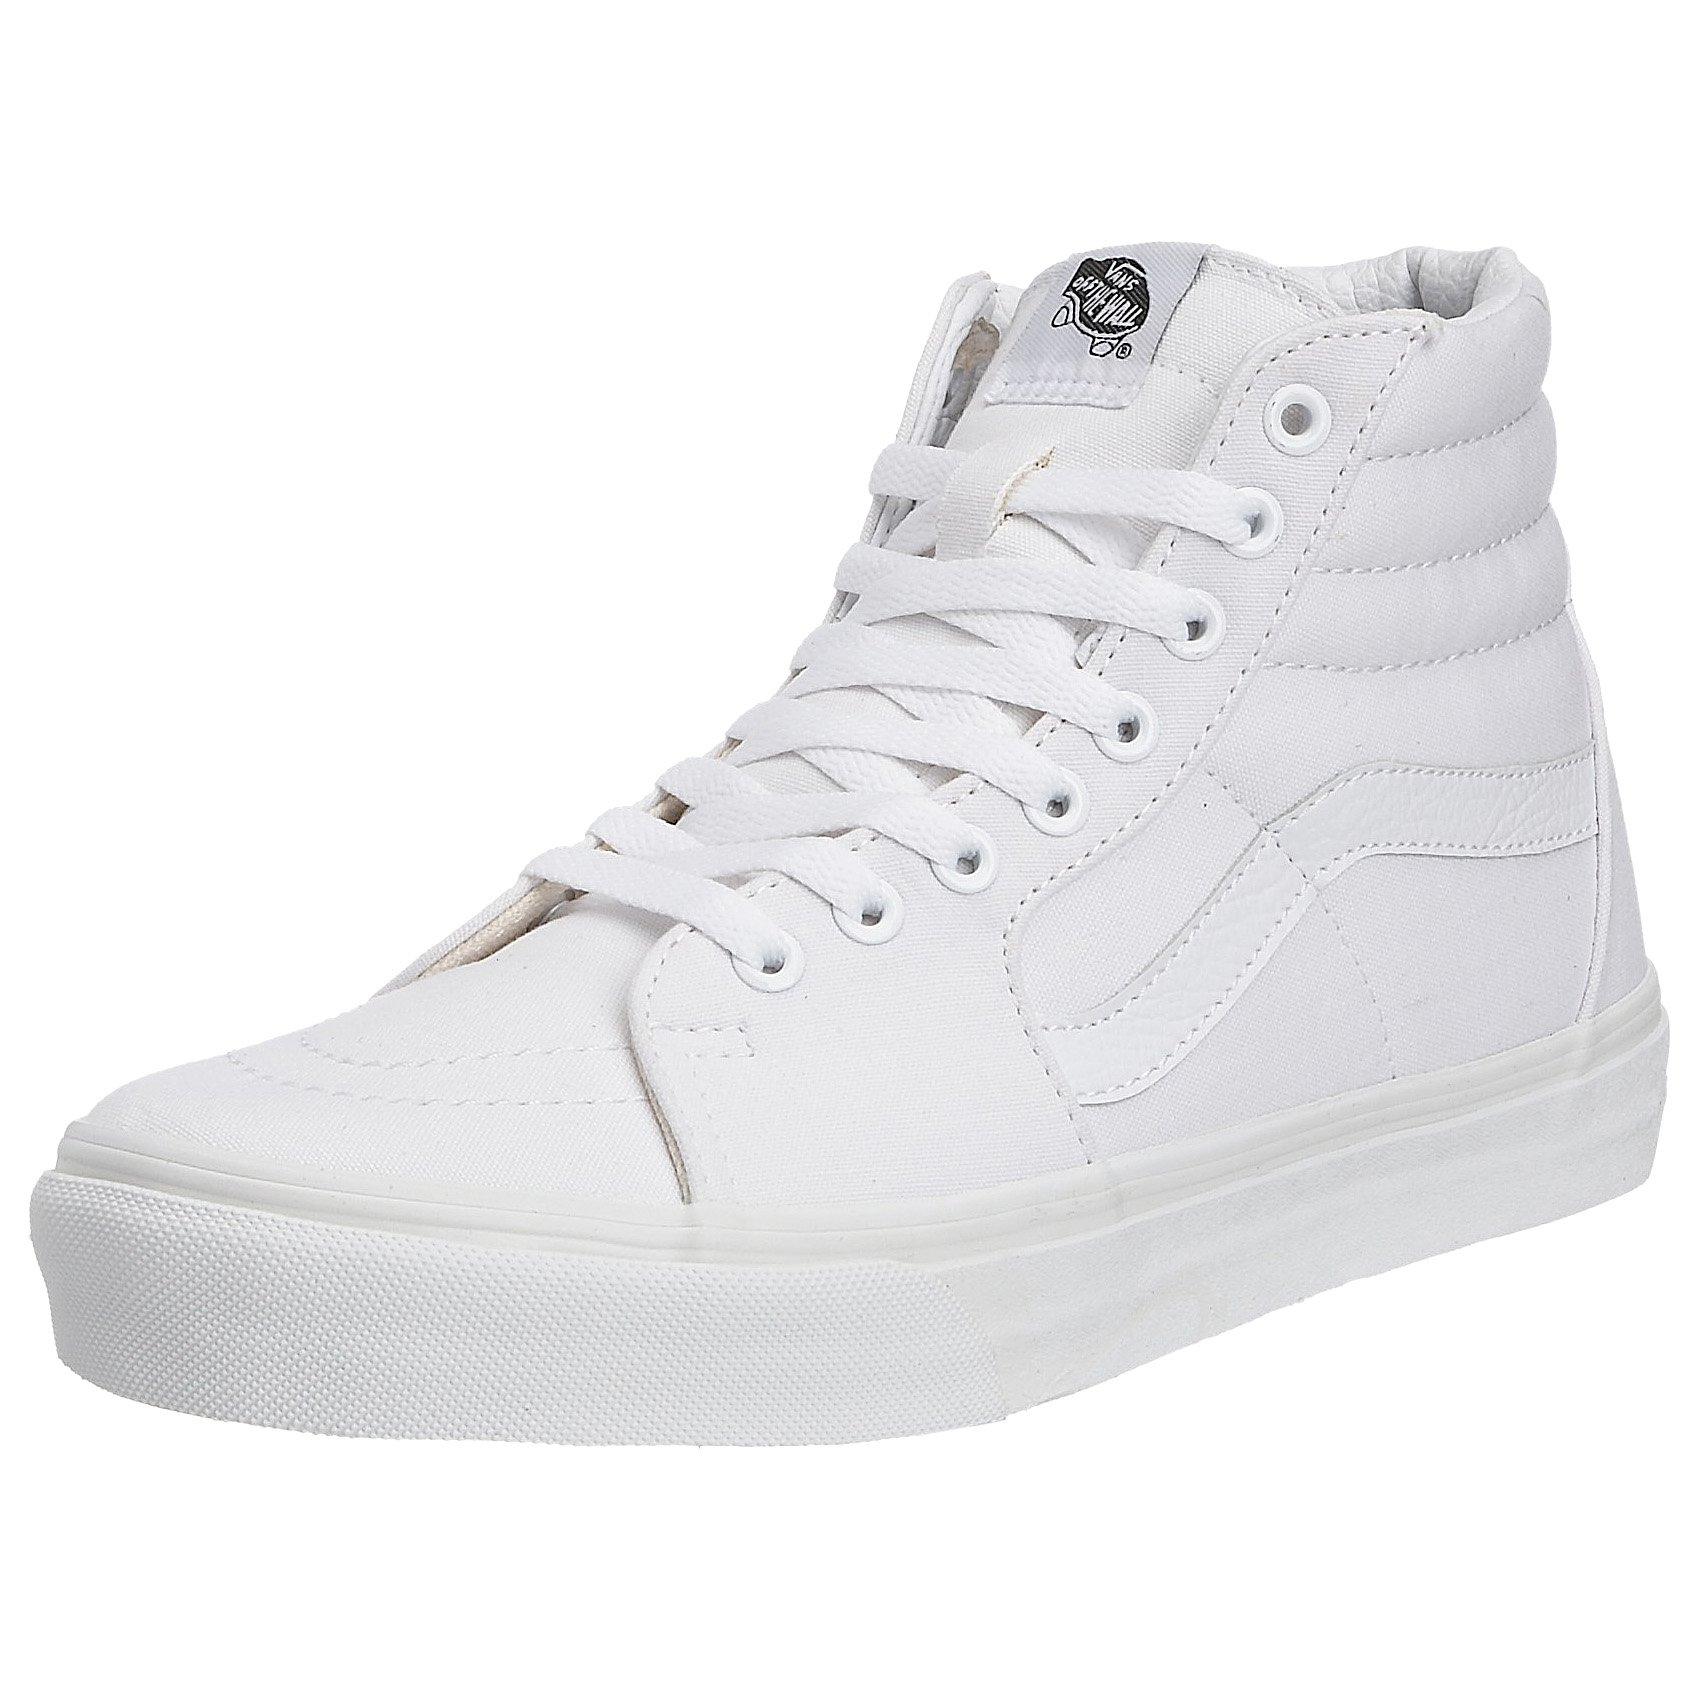 Vans Unisex SK8-Hi True White VN000D5IW00 Mens 5, Womens 6.5 by Vans